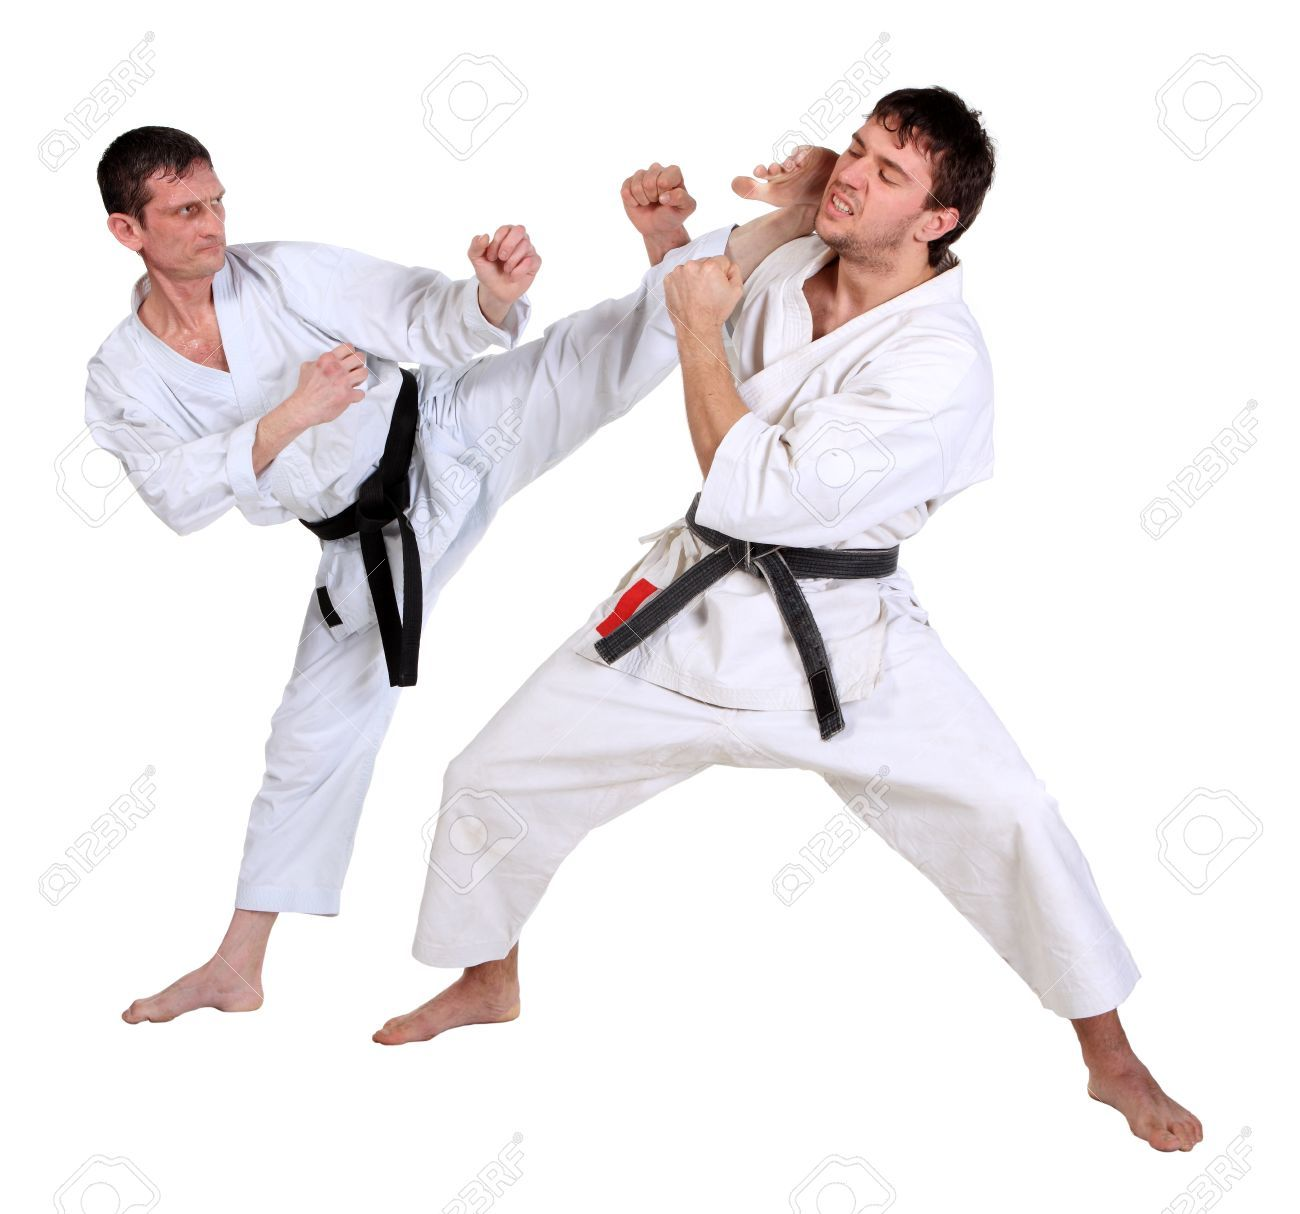 the importance of discipline in karate Our children's classes are fun and promotes discipline, self esteem, and self confidence positive environment your child will benefit from the fitness, self confidence and socialization aspects of martial arts.